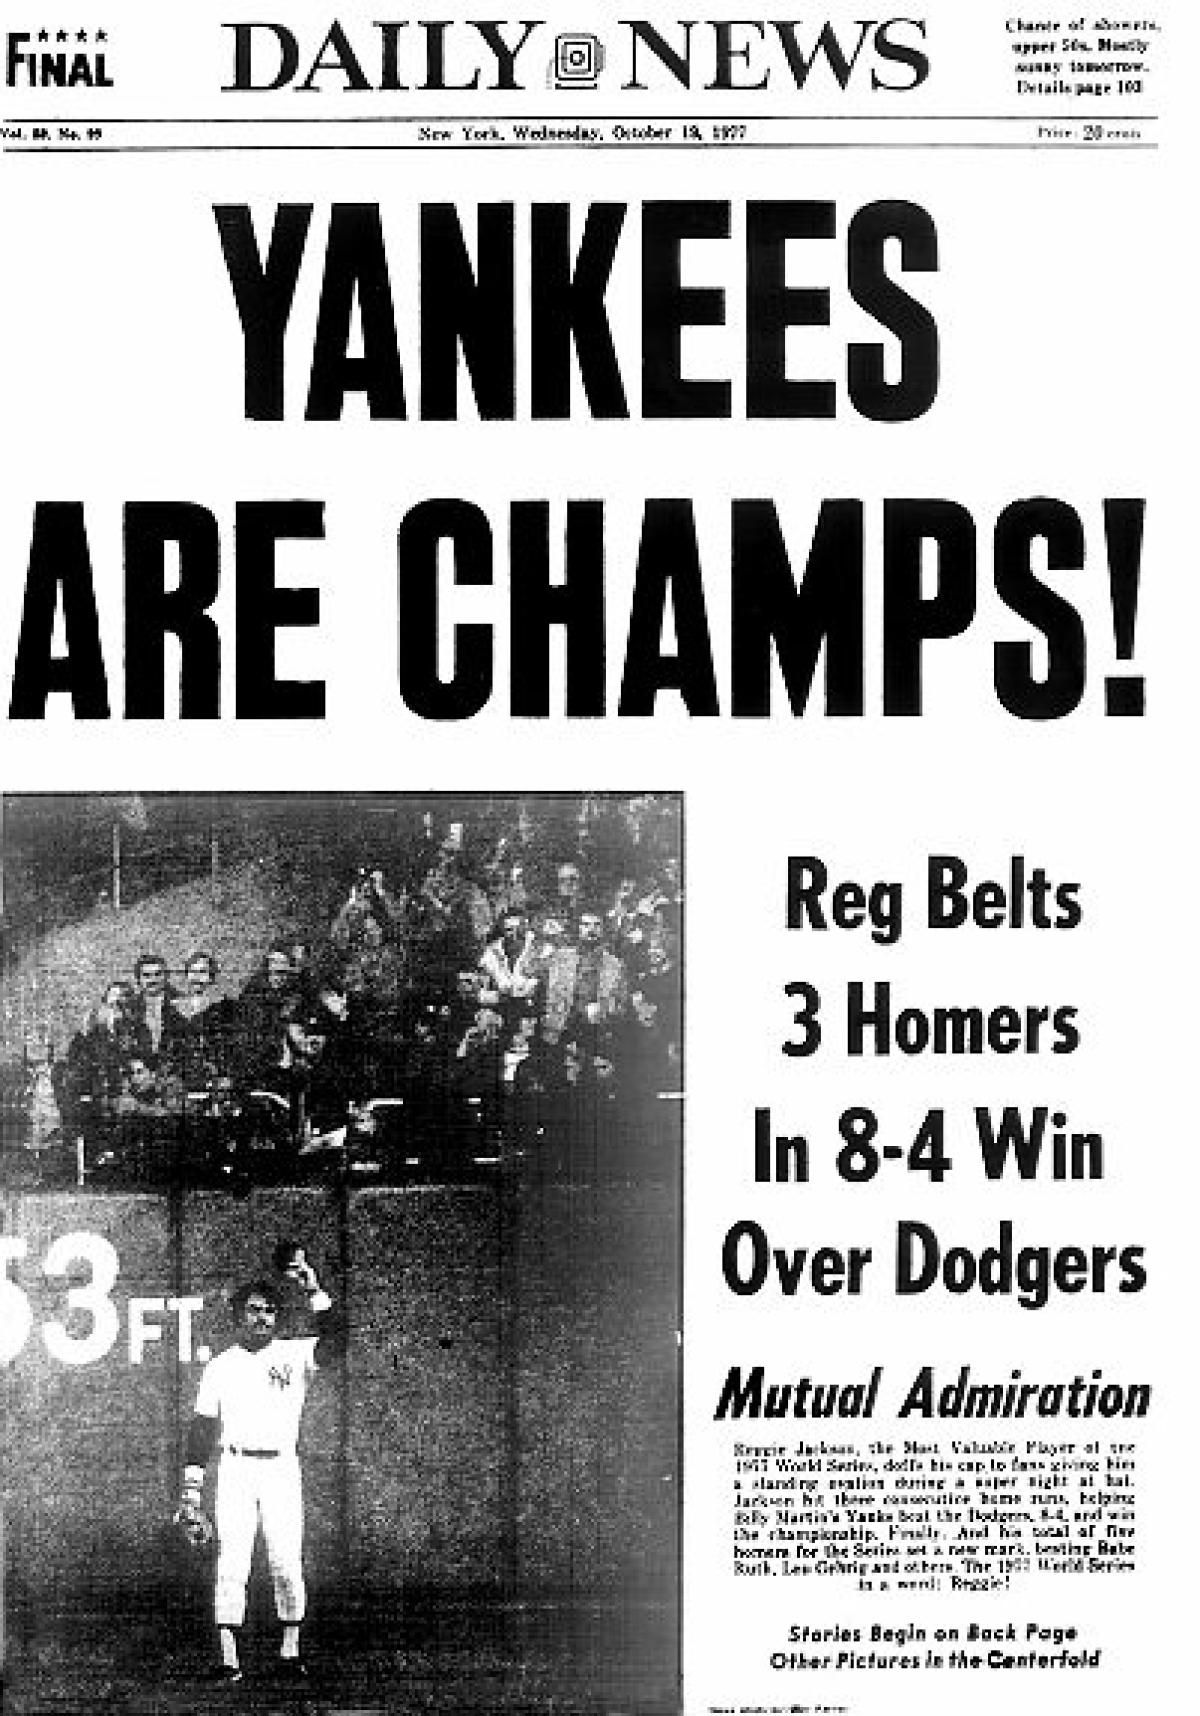 27 Yankees World Series Titles 27 Daily News Covers Yankees World Series Yankees New York Yankees Baseball